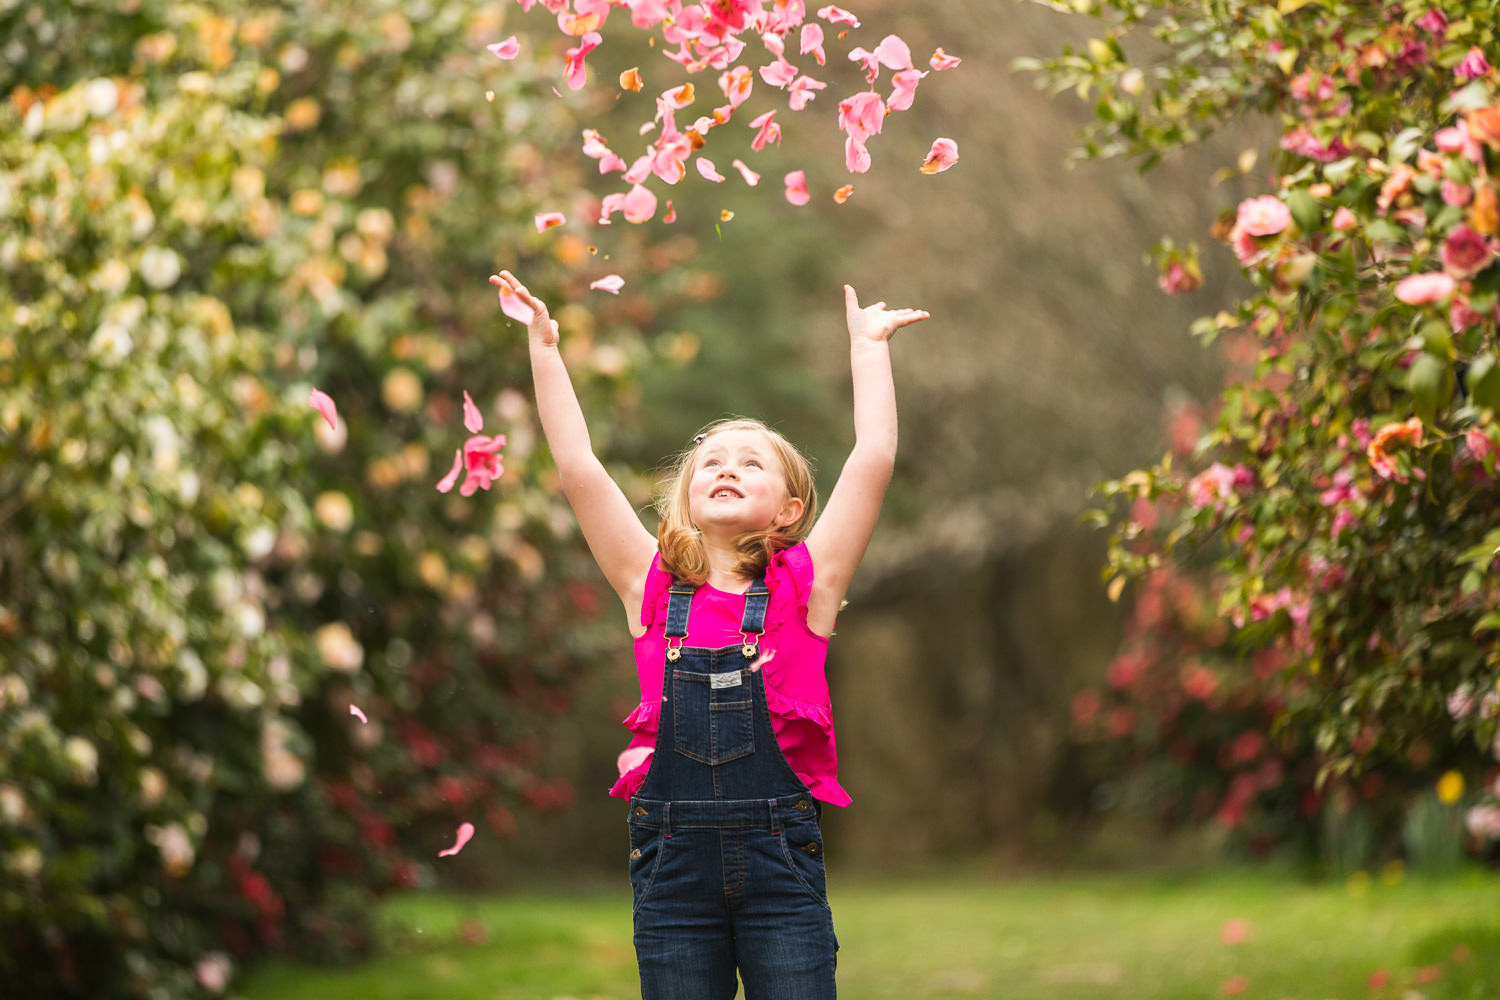 Hilliers photography - girl throwing petals